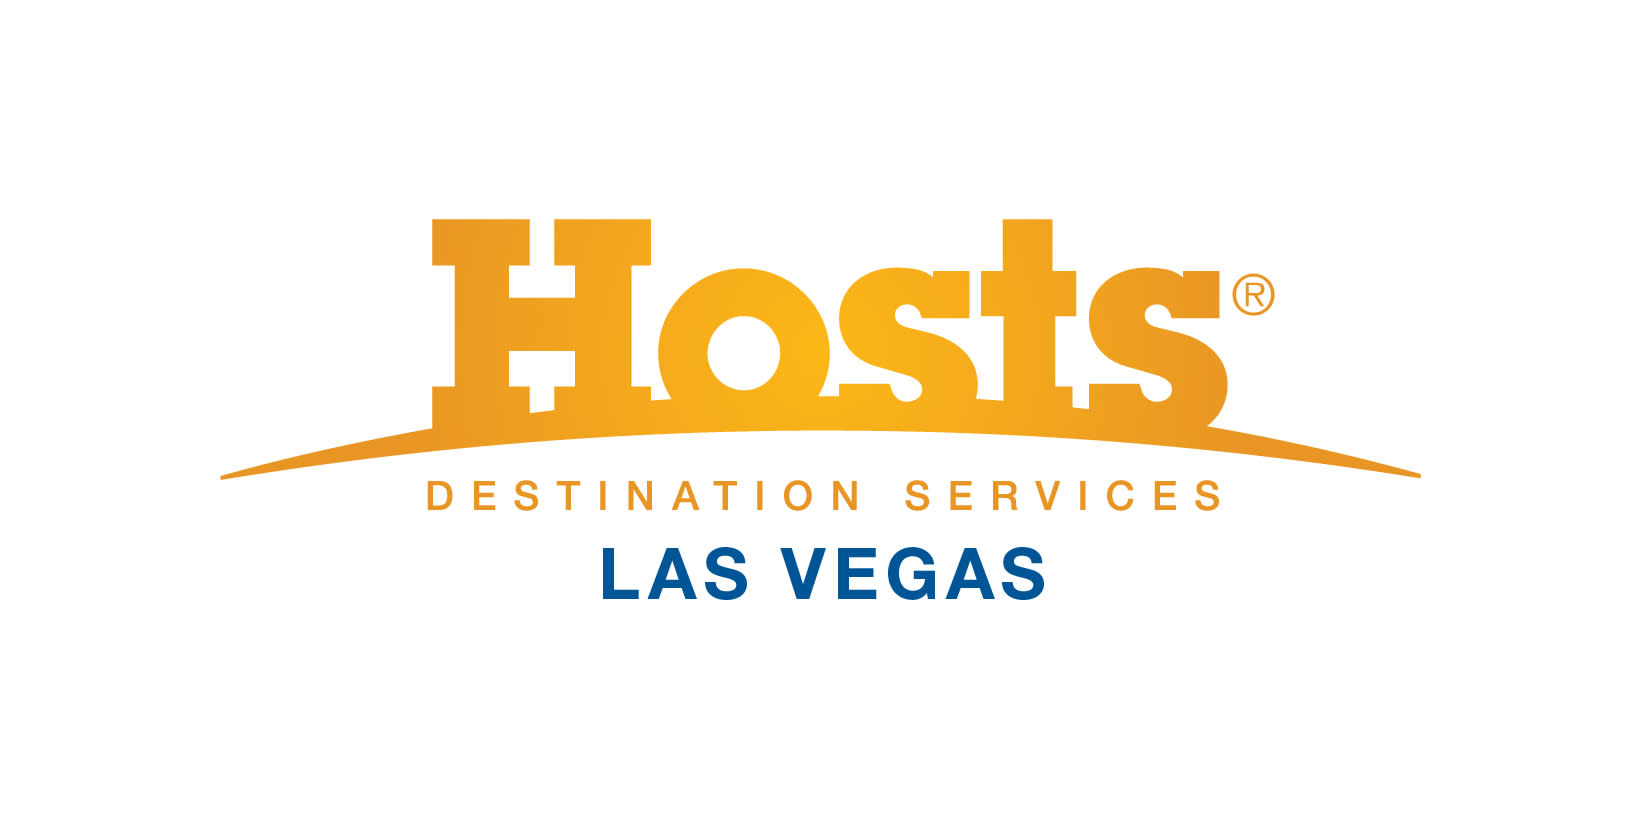 Hosts Las Vegas, a Hosts Global member